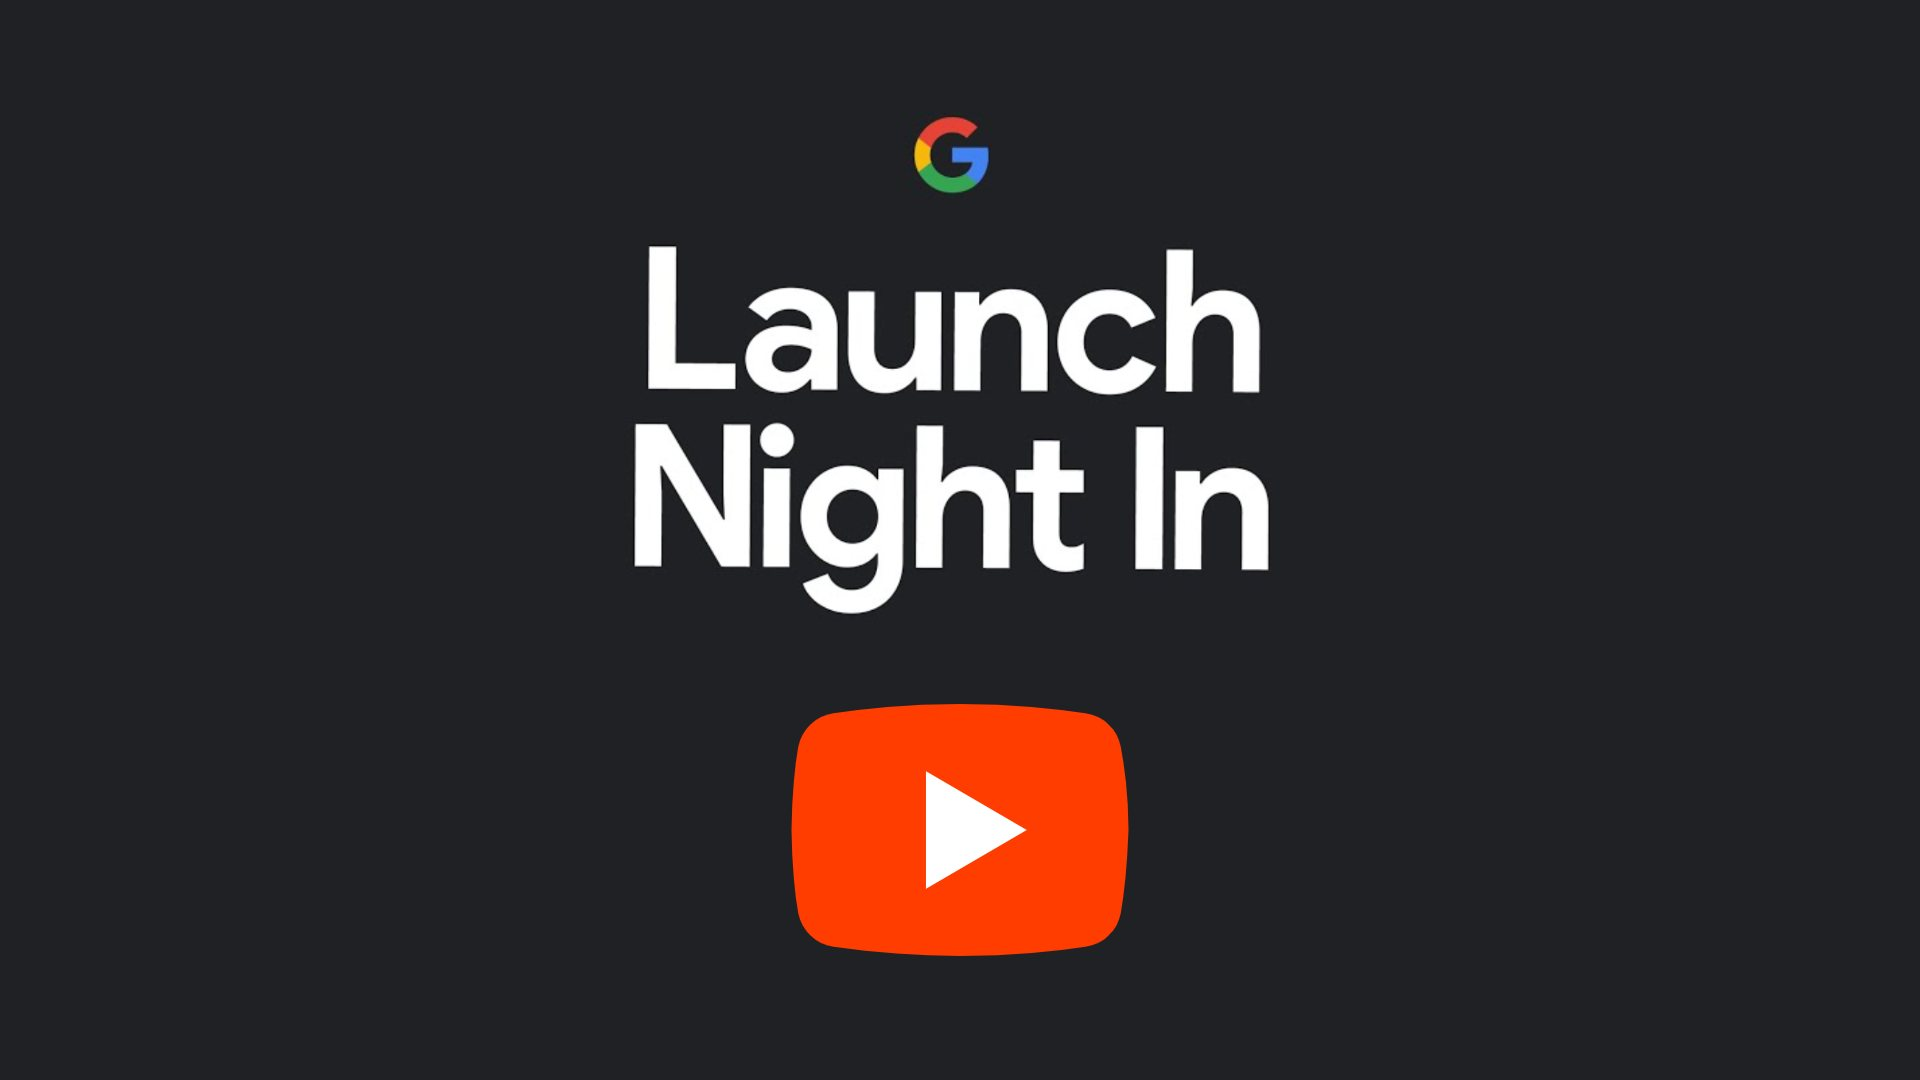 Where to watch Google's 'Launch Night In' hardware event